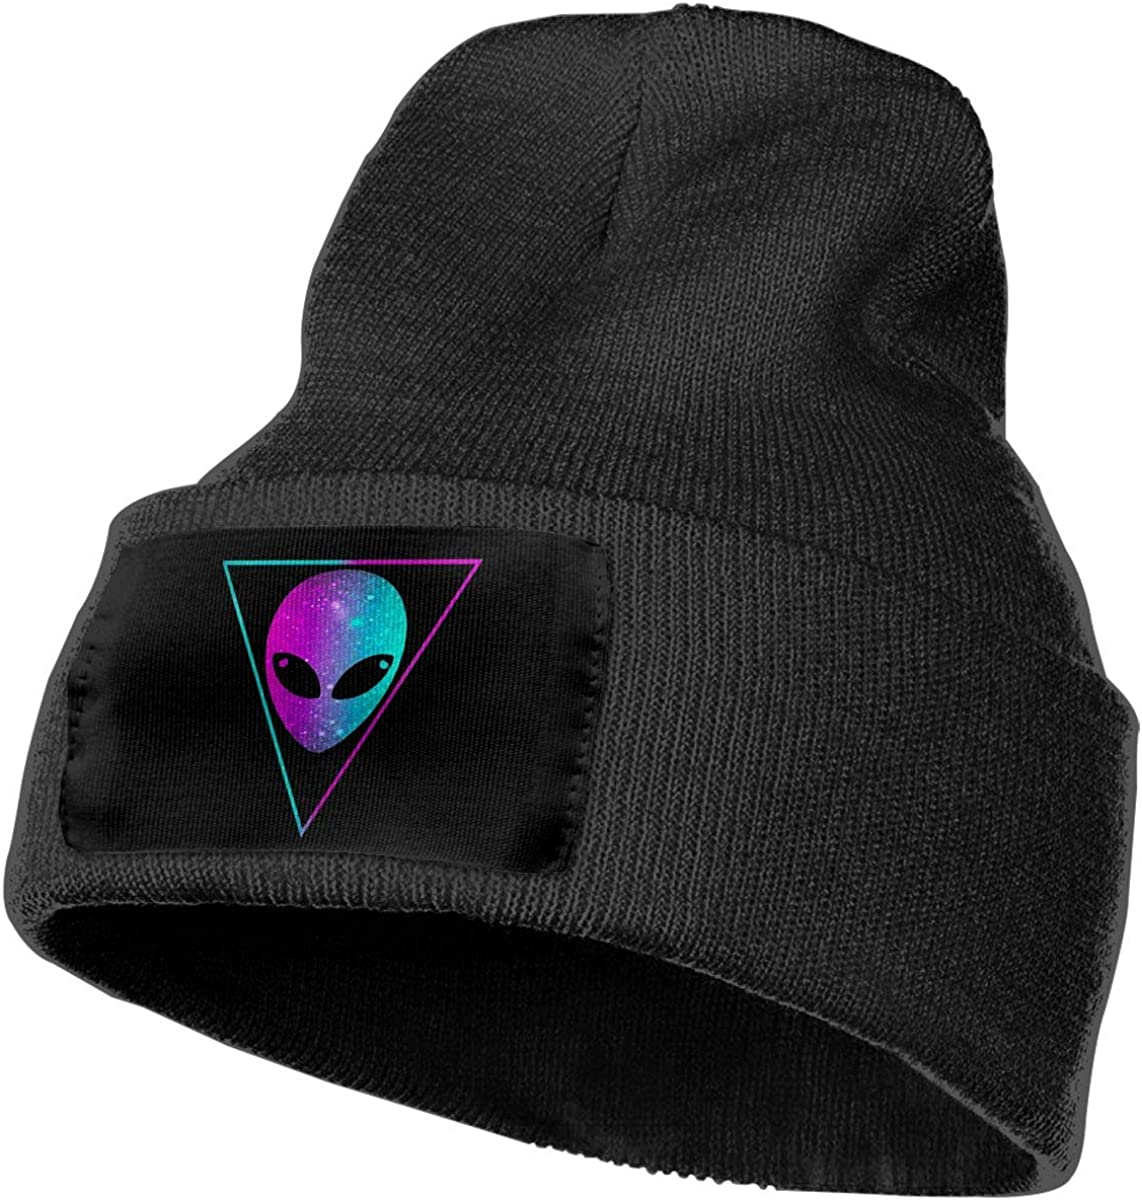 Unisex Winter Hats Psychedelic Alien Head Skull Caps Knit Hat Cap Beanie Cap for Men//Womens